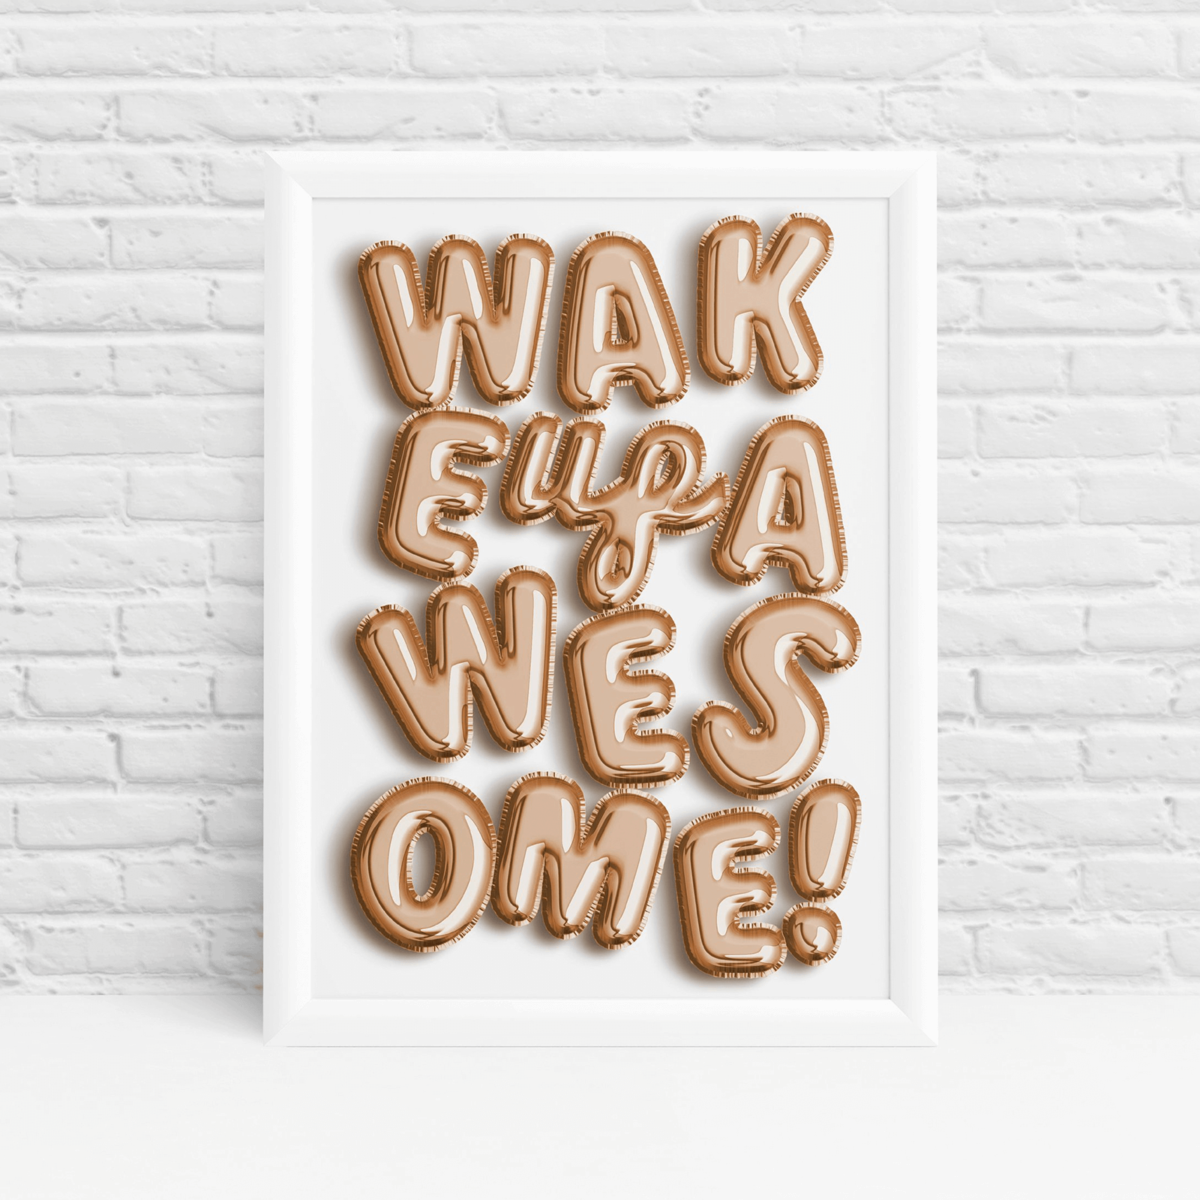 Positive quote balloon letters 'Wake up awesome!' print by Ibbleobble®